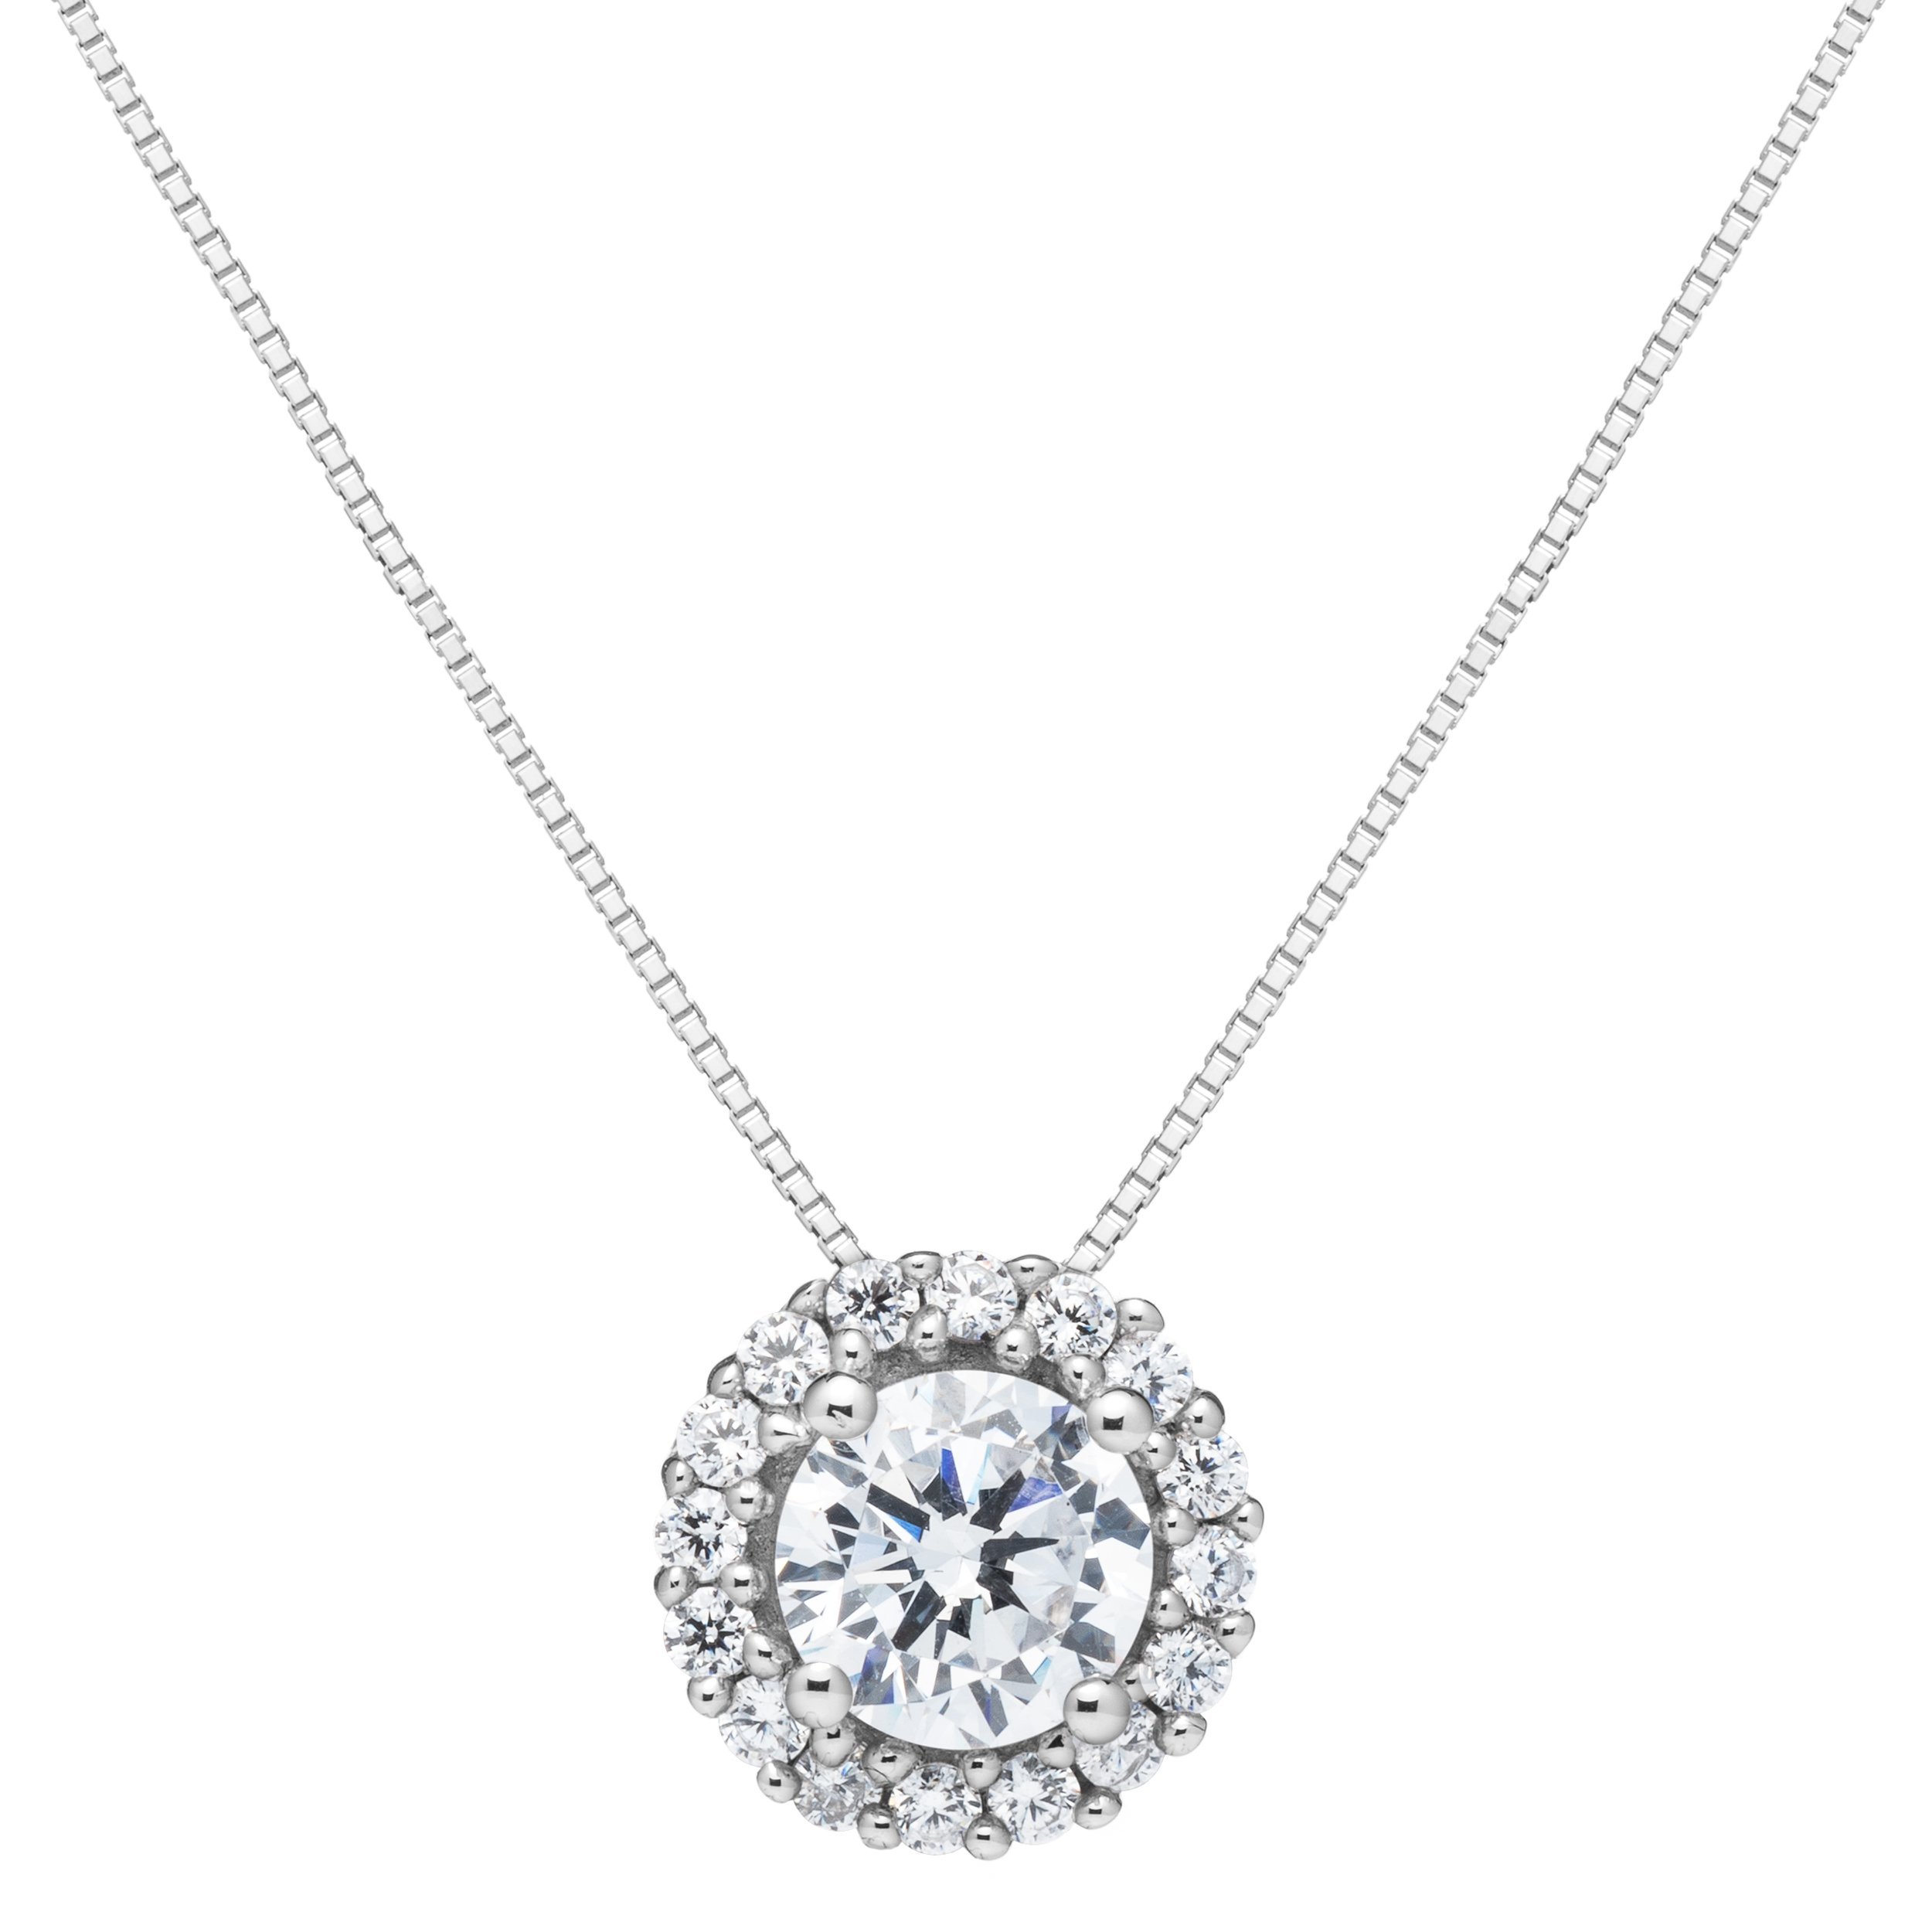 14K Solid White Gold Round Cut Cubic Zirconia Solitaire Pendant Necklace (1.0 ct center, 1.24 cttw), 18 inch .60mm Box Link Chain, Gift Box